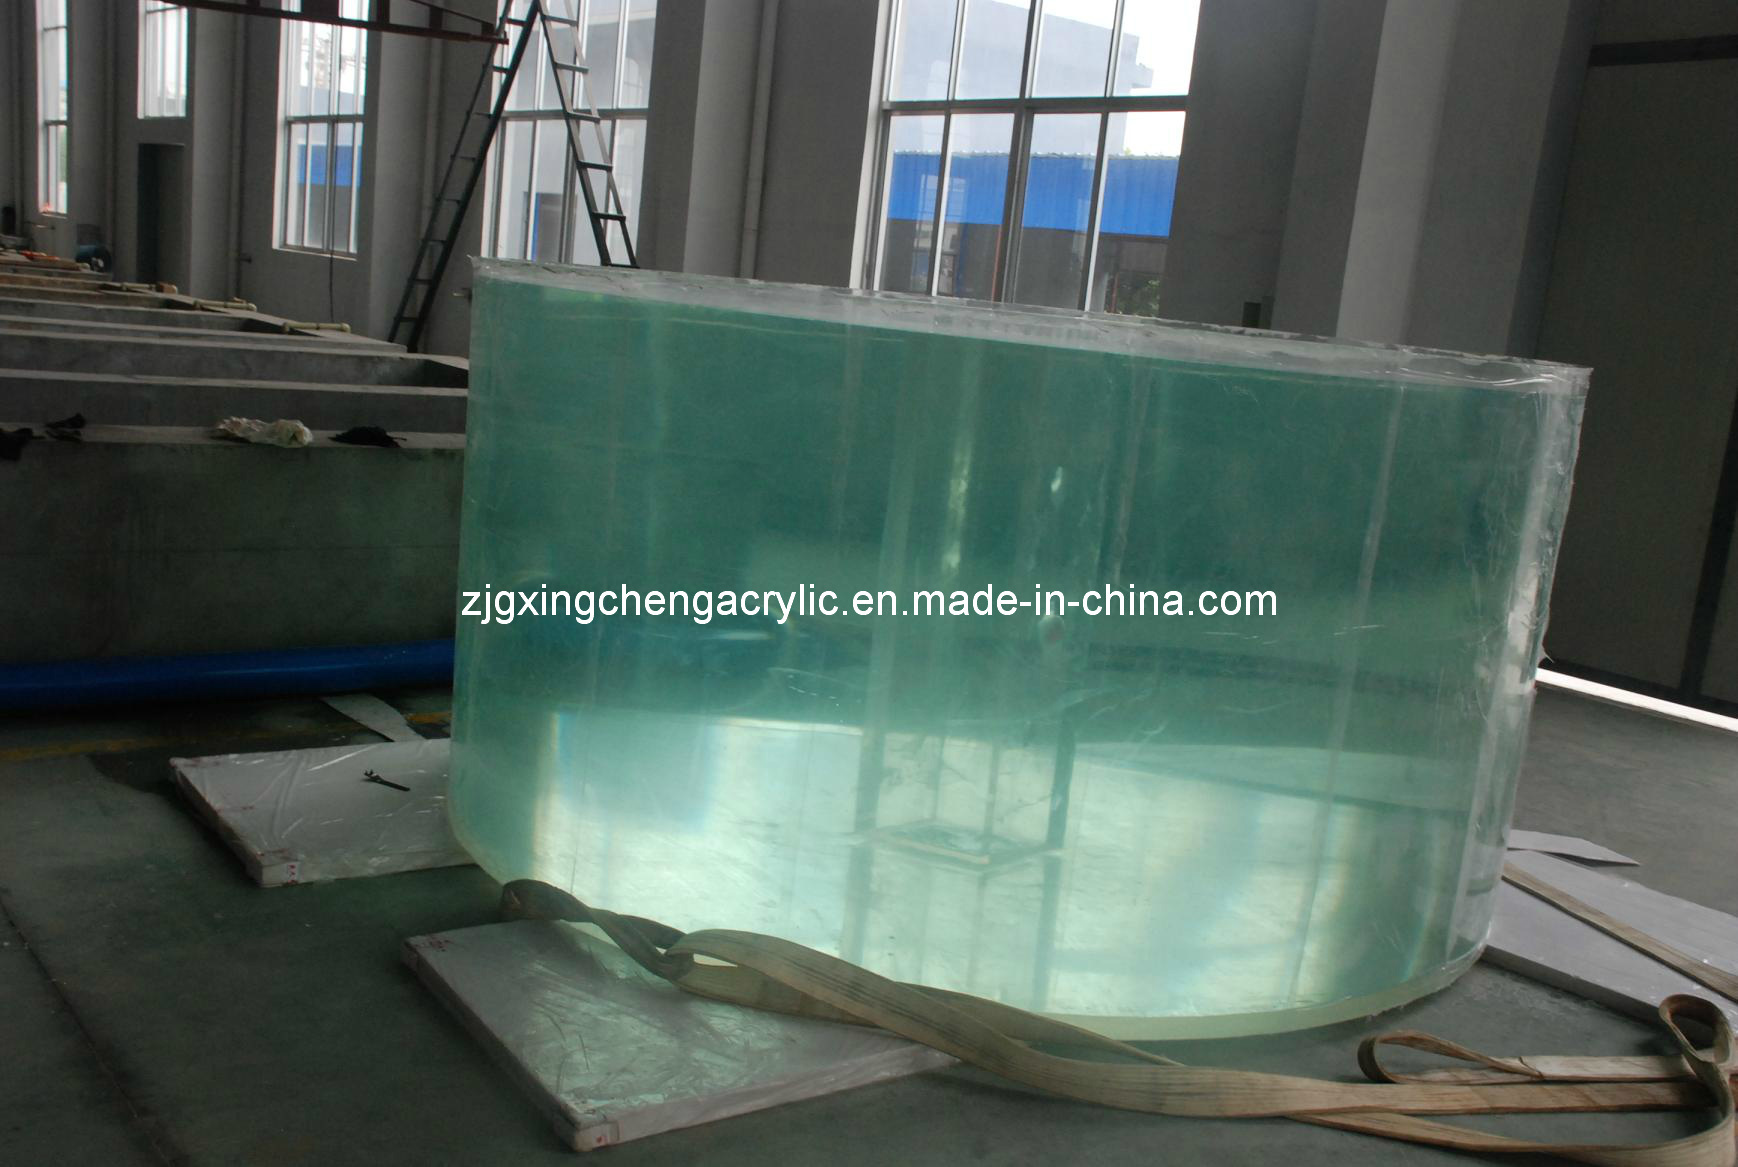 China Acrylic Fish Tank Photos & Pictures - made-in-china.com